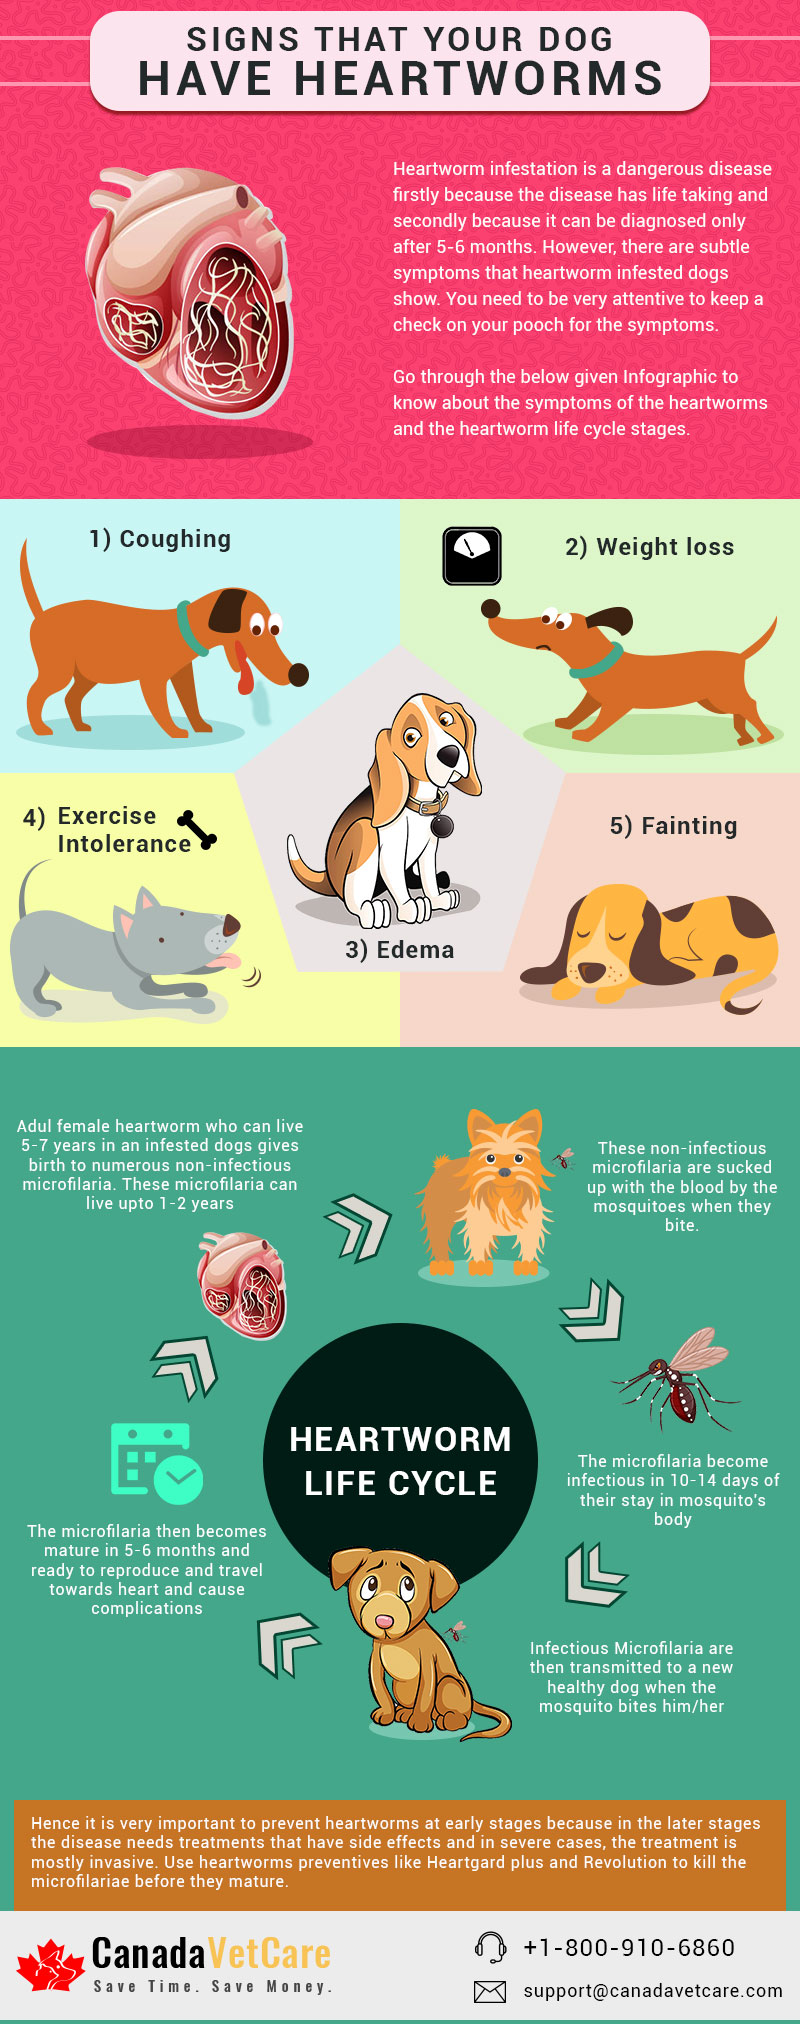 CVC-SIGNS-DOG-HAVE-HEARTWORMS-infographic-plaza